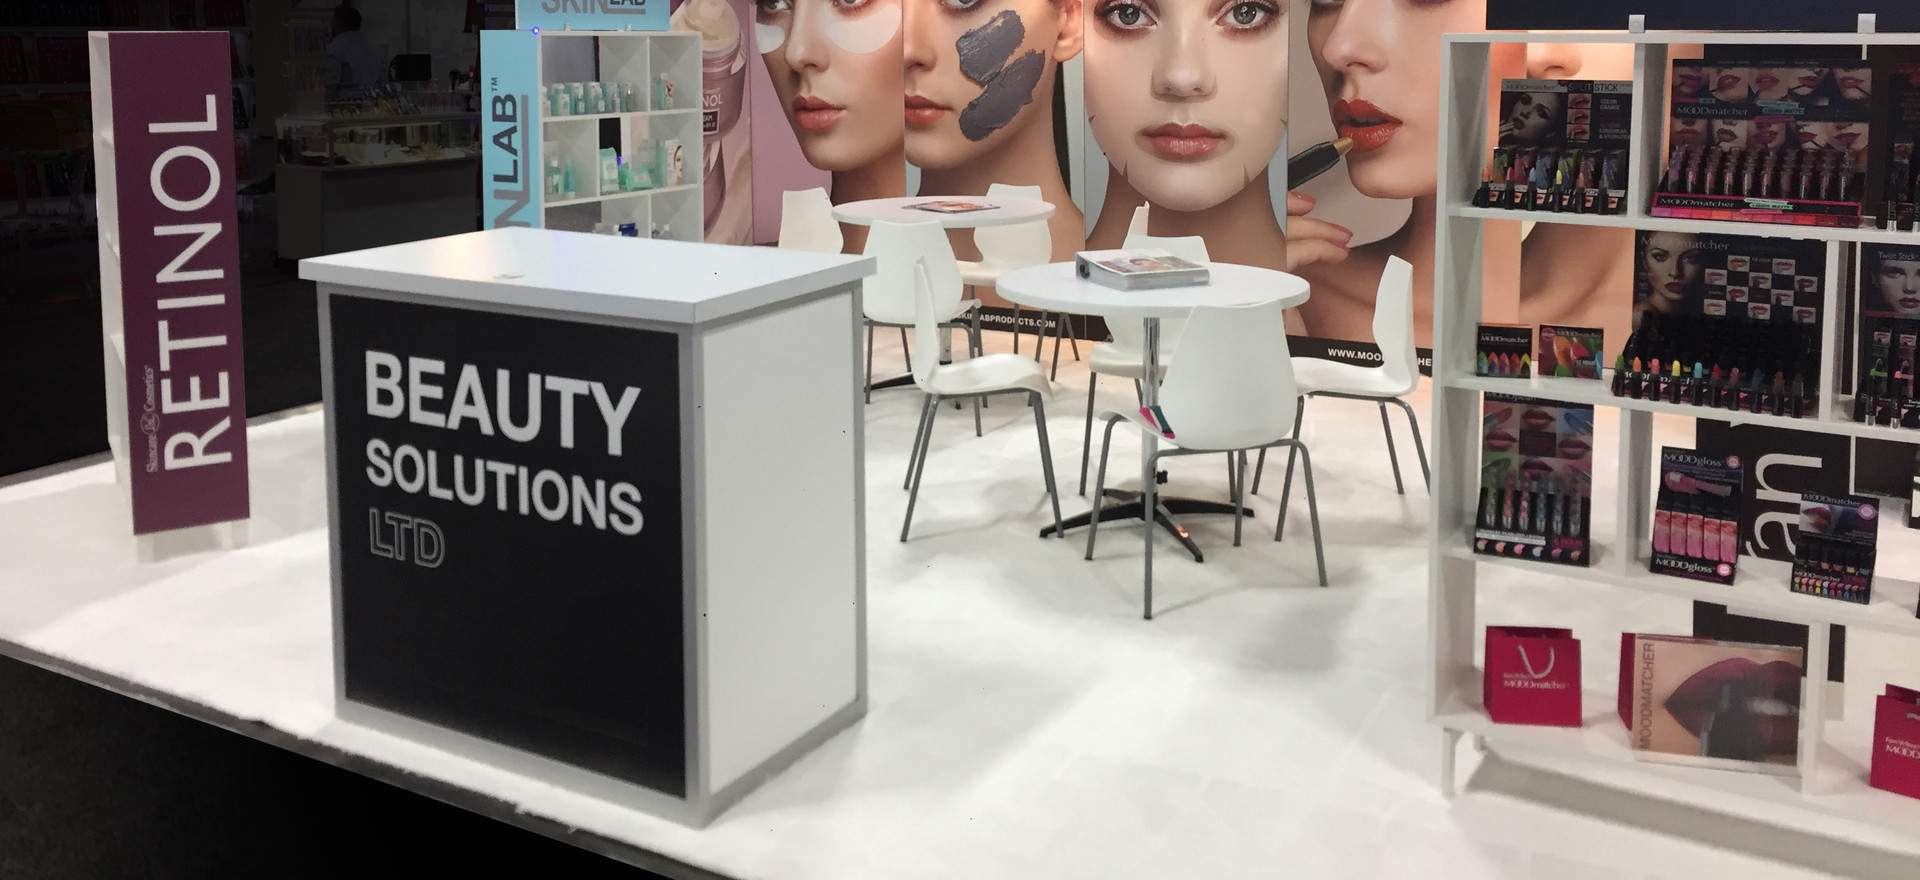 Beauty Solutions, Ltd. Tradeshow